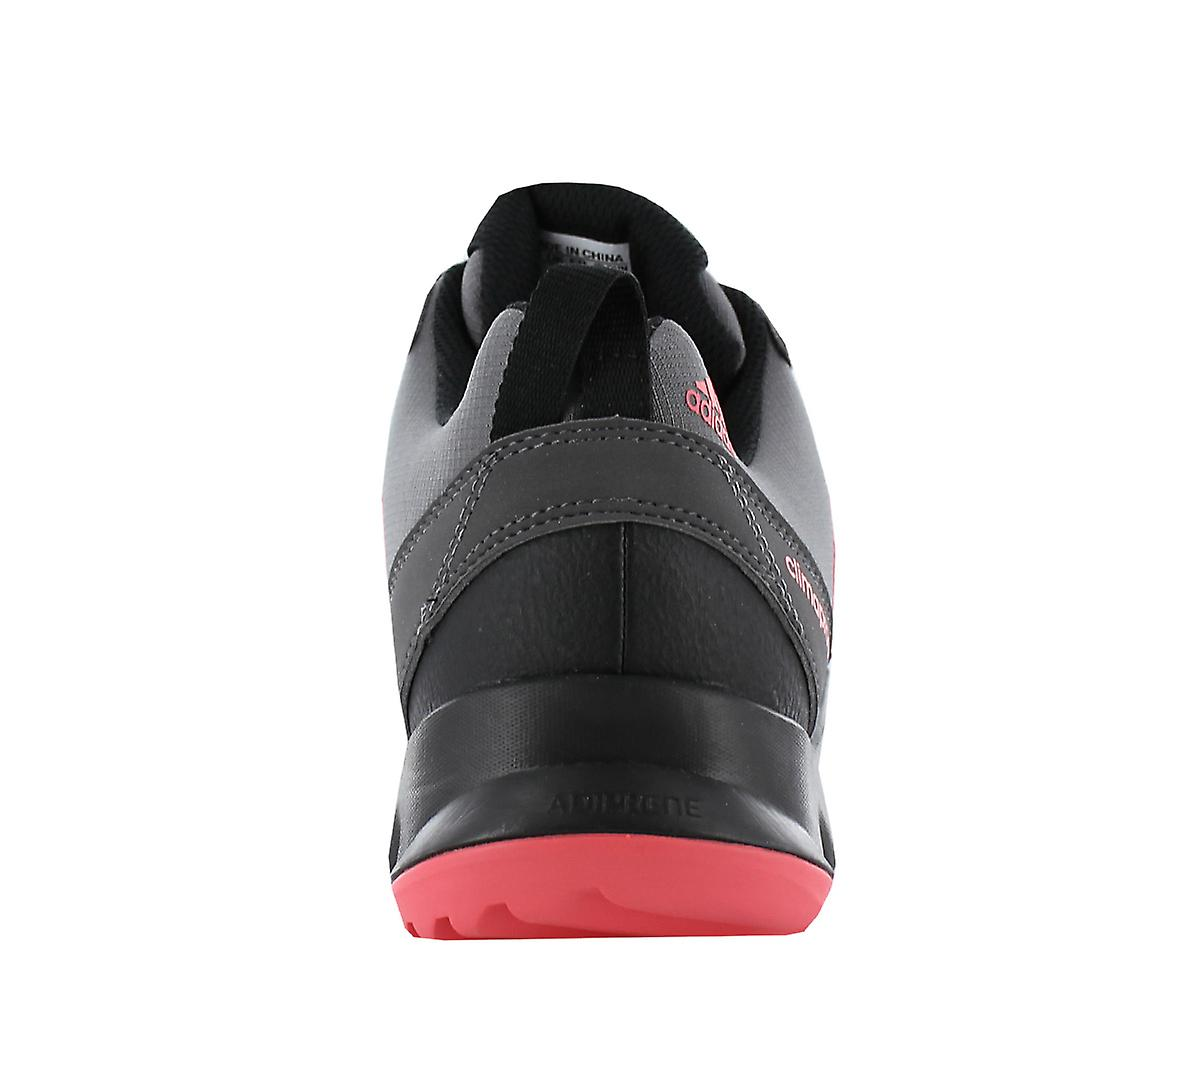 adidas AX2 Climaproof W BB1681 Women's Outdoor Shoes Grey Sneakers Sports Shoes